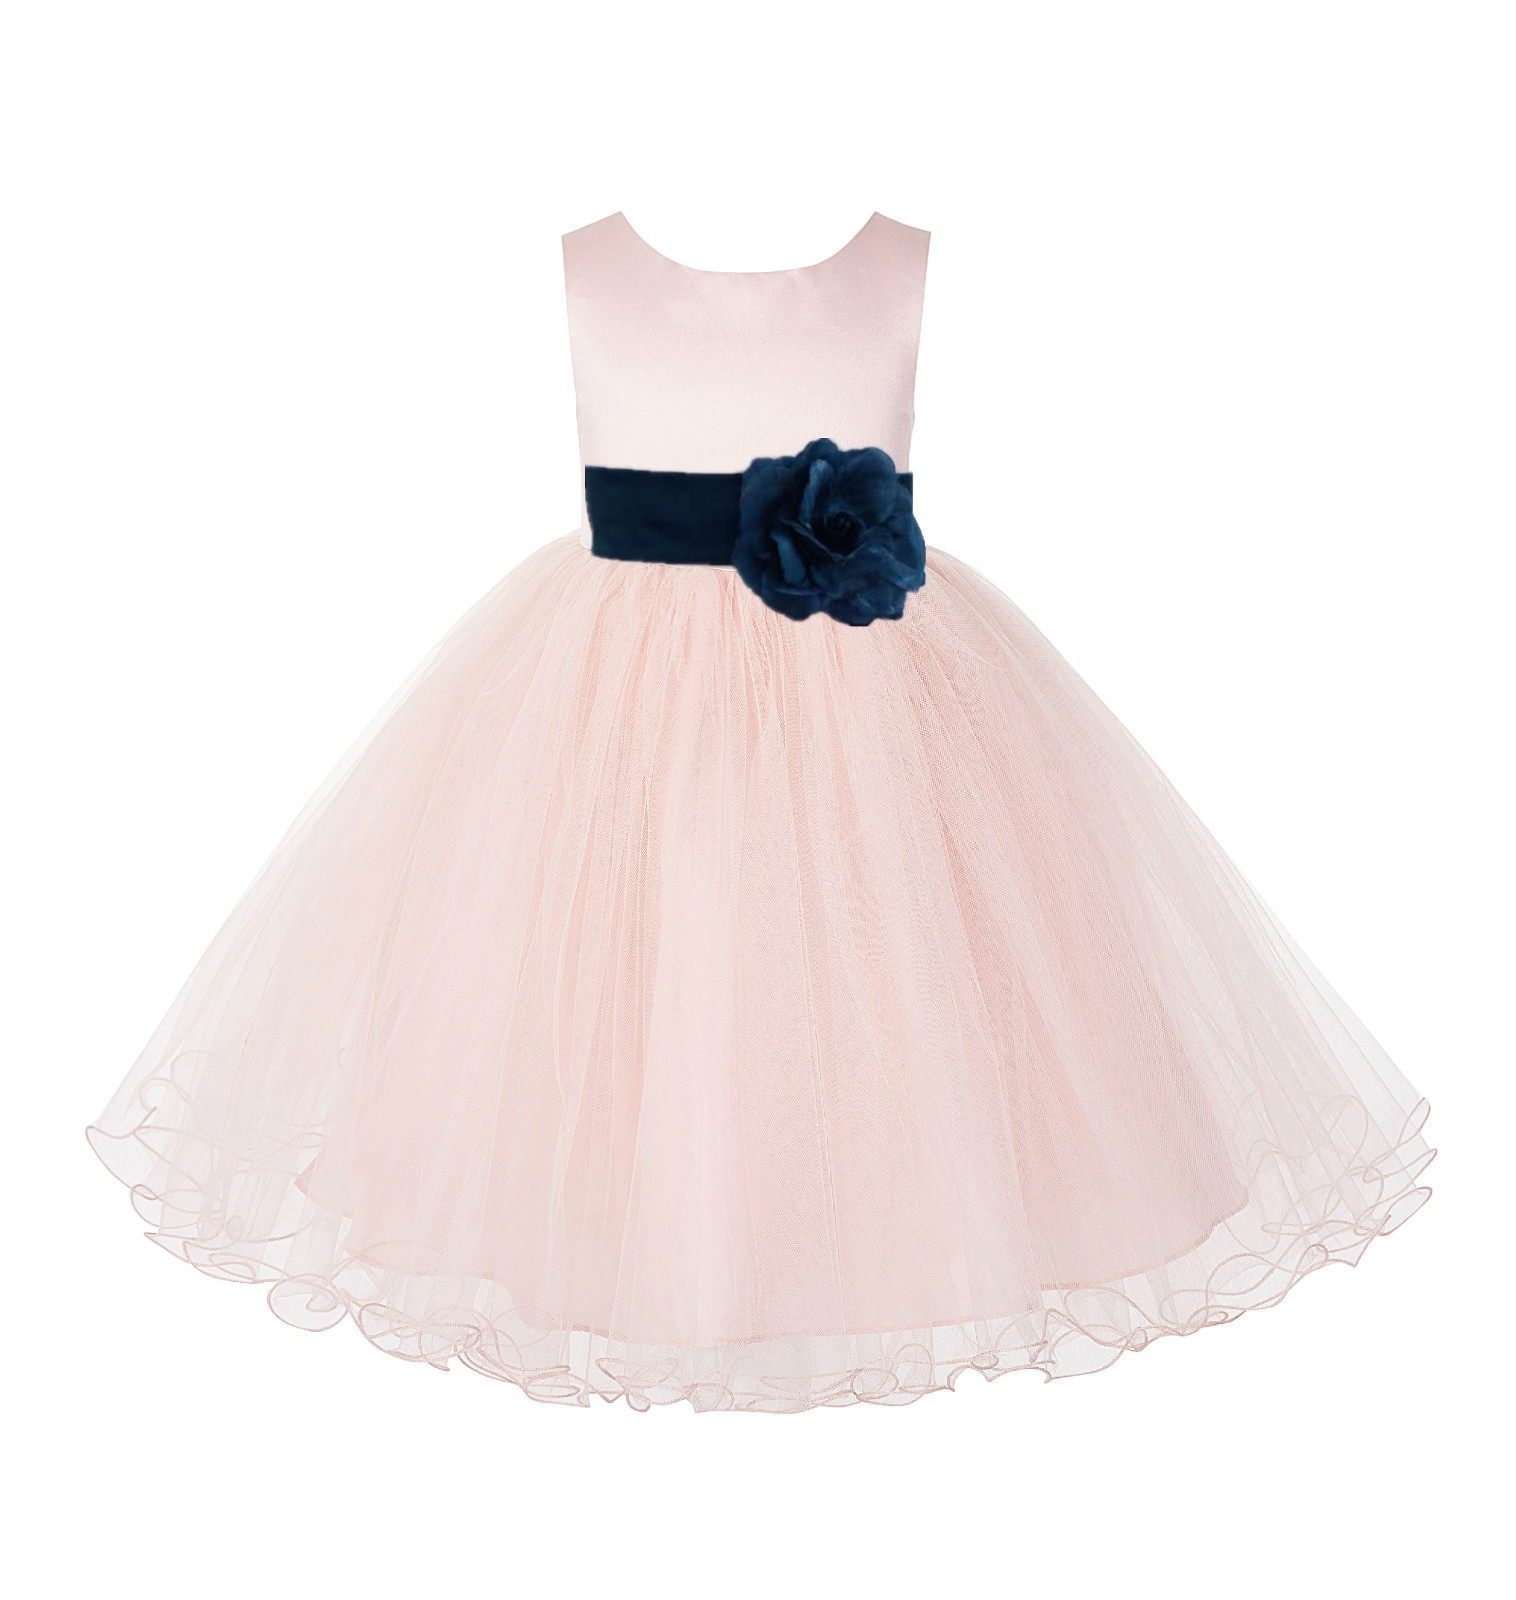 Blush Pink / peacock Tulle Rattail Edge Flower Girl Dress Pageant Recital 829S